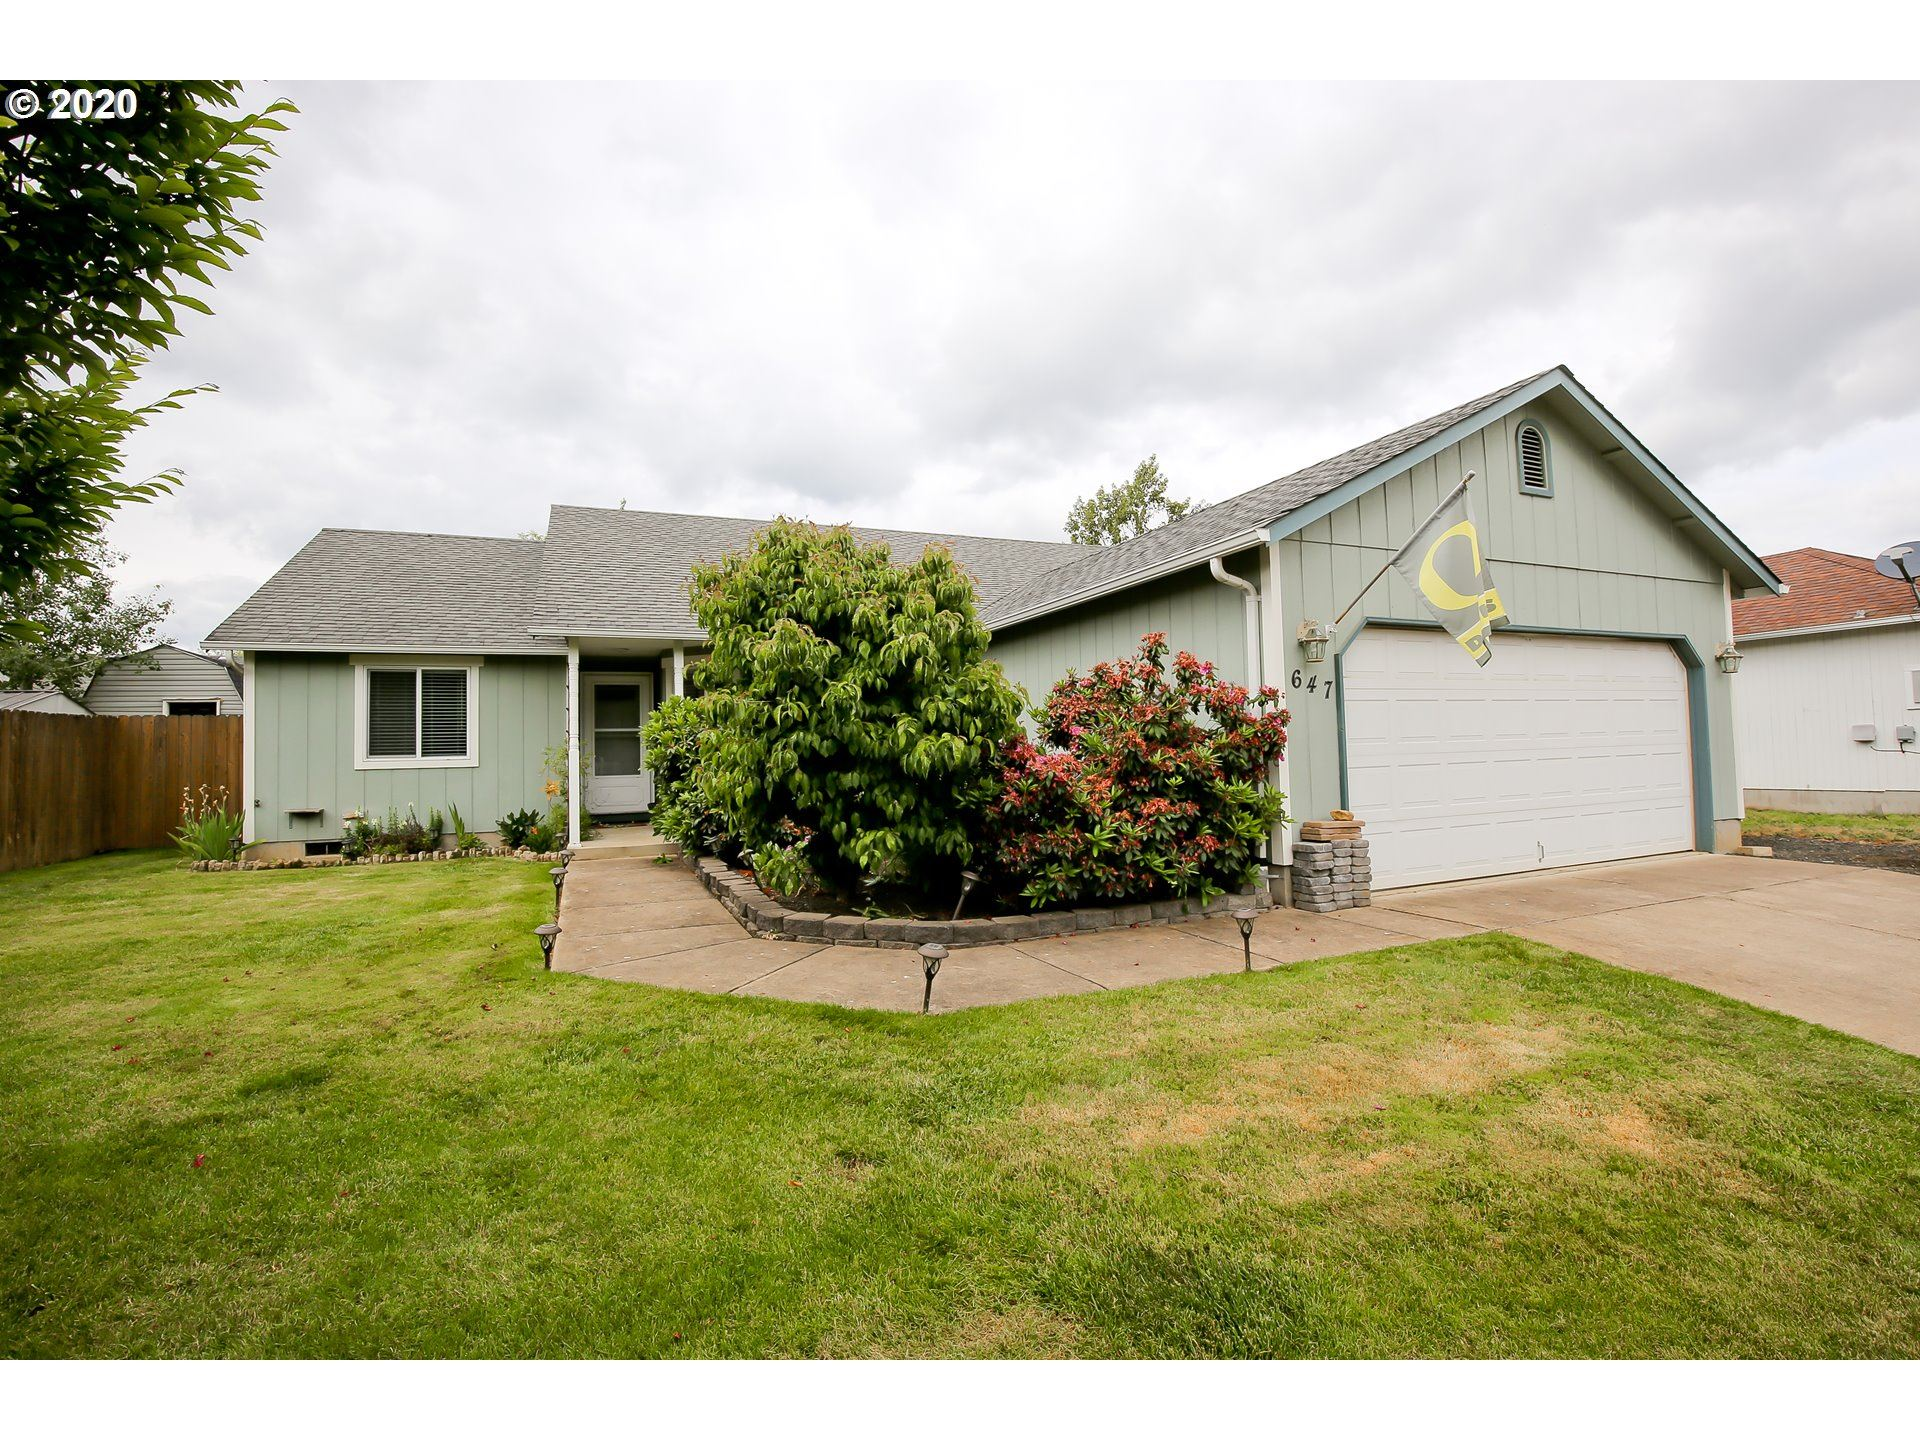 Photo for 647 BLUE JAY LOOP, Creswell, OR 97426 (MLS # 20166760)